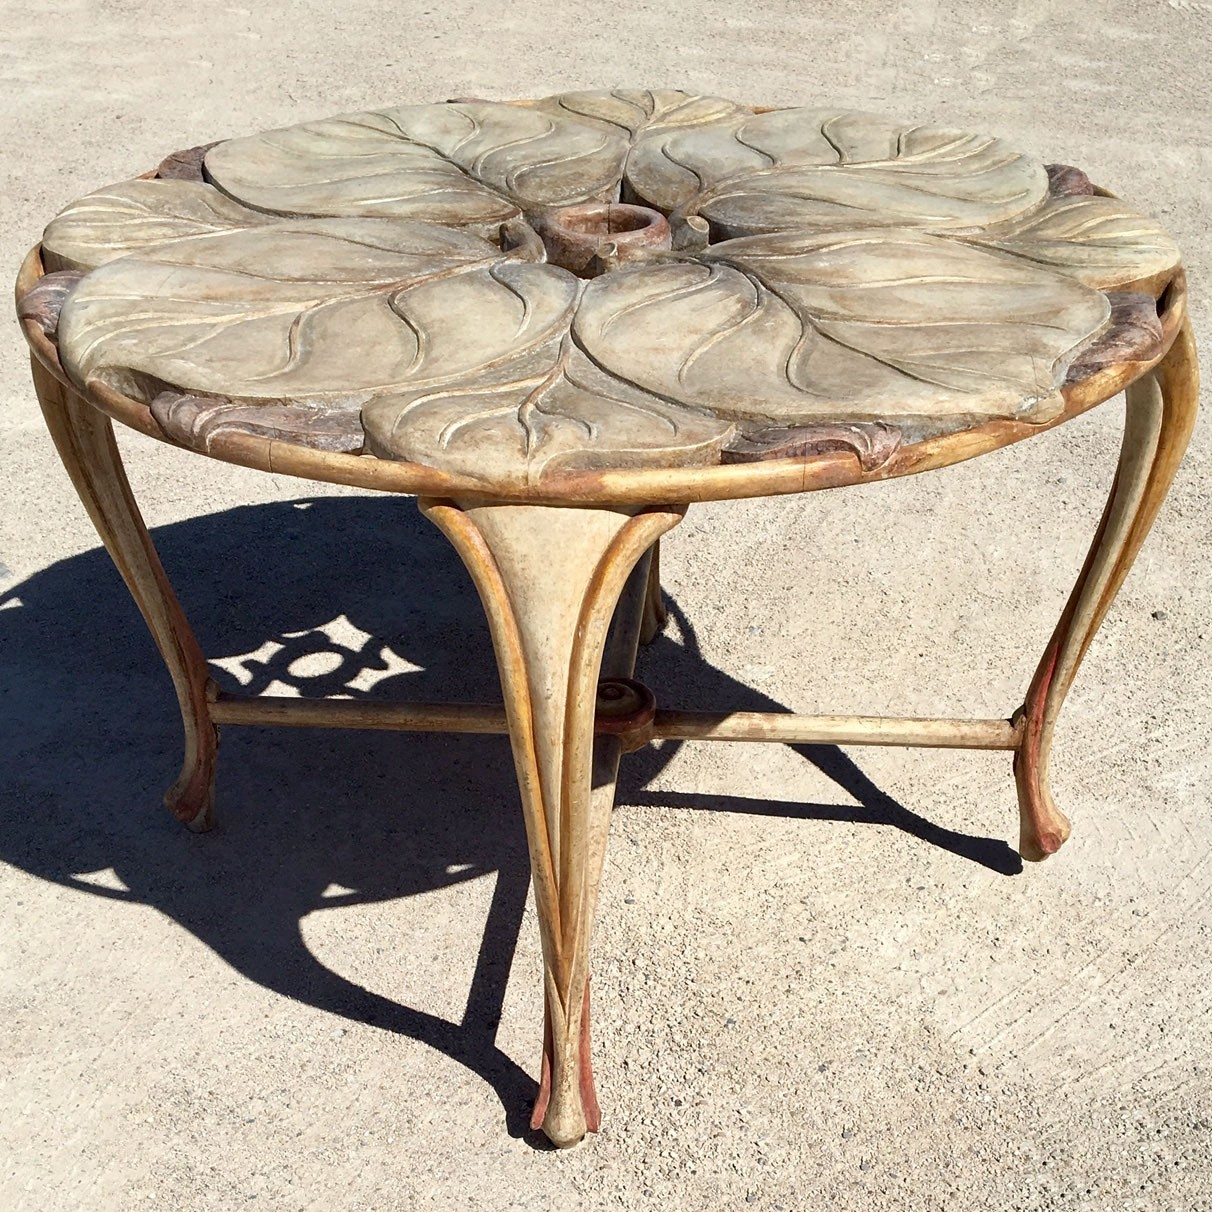 Vintage Italian Carved Wood Round Table with Large Leaf Table top 1970s